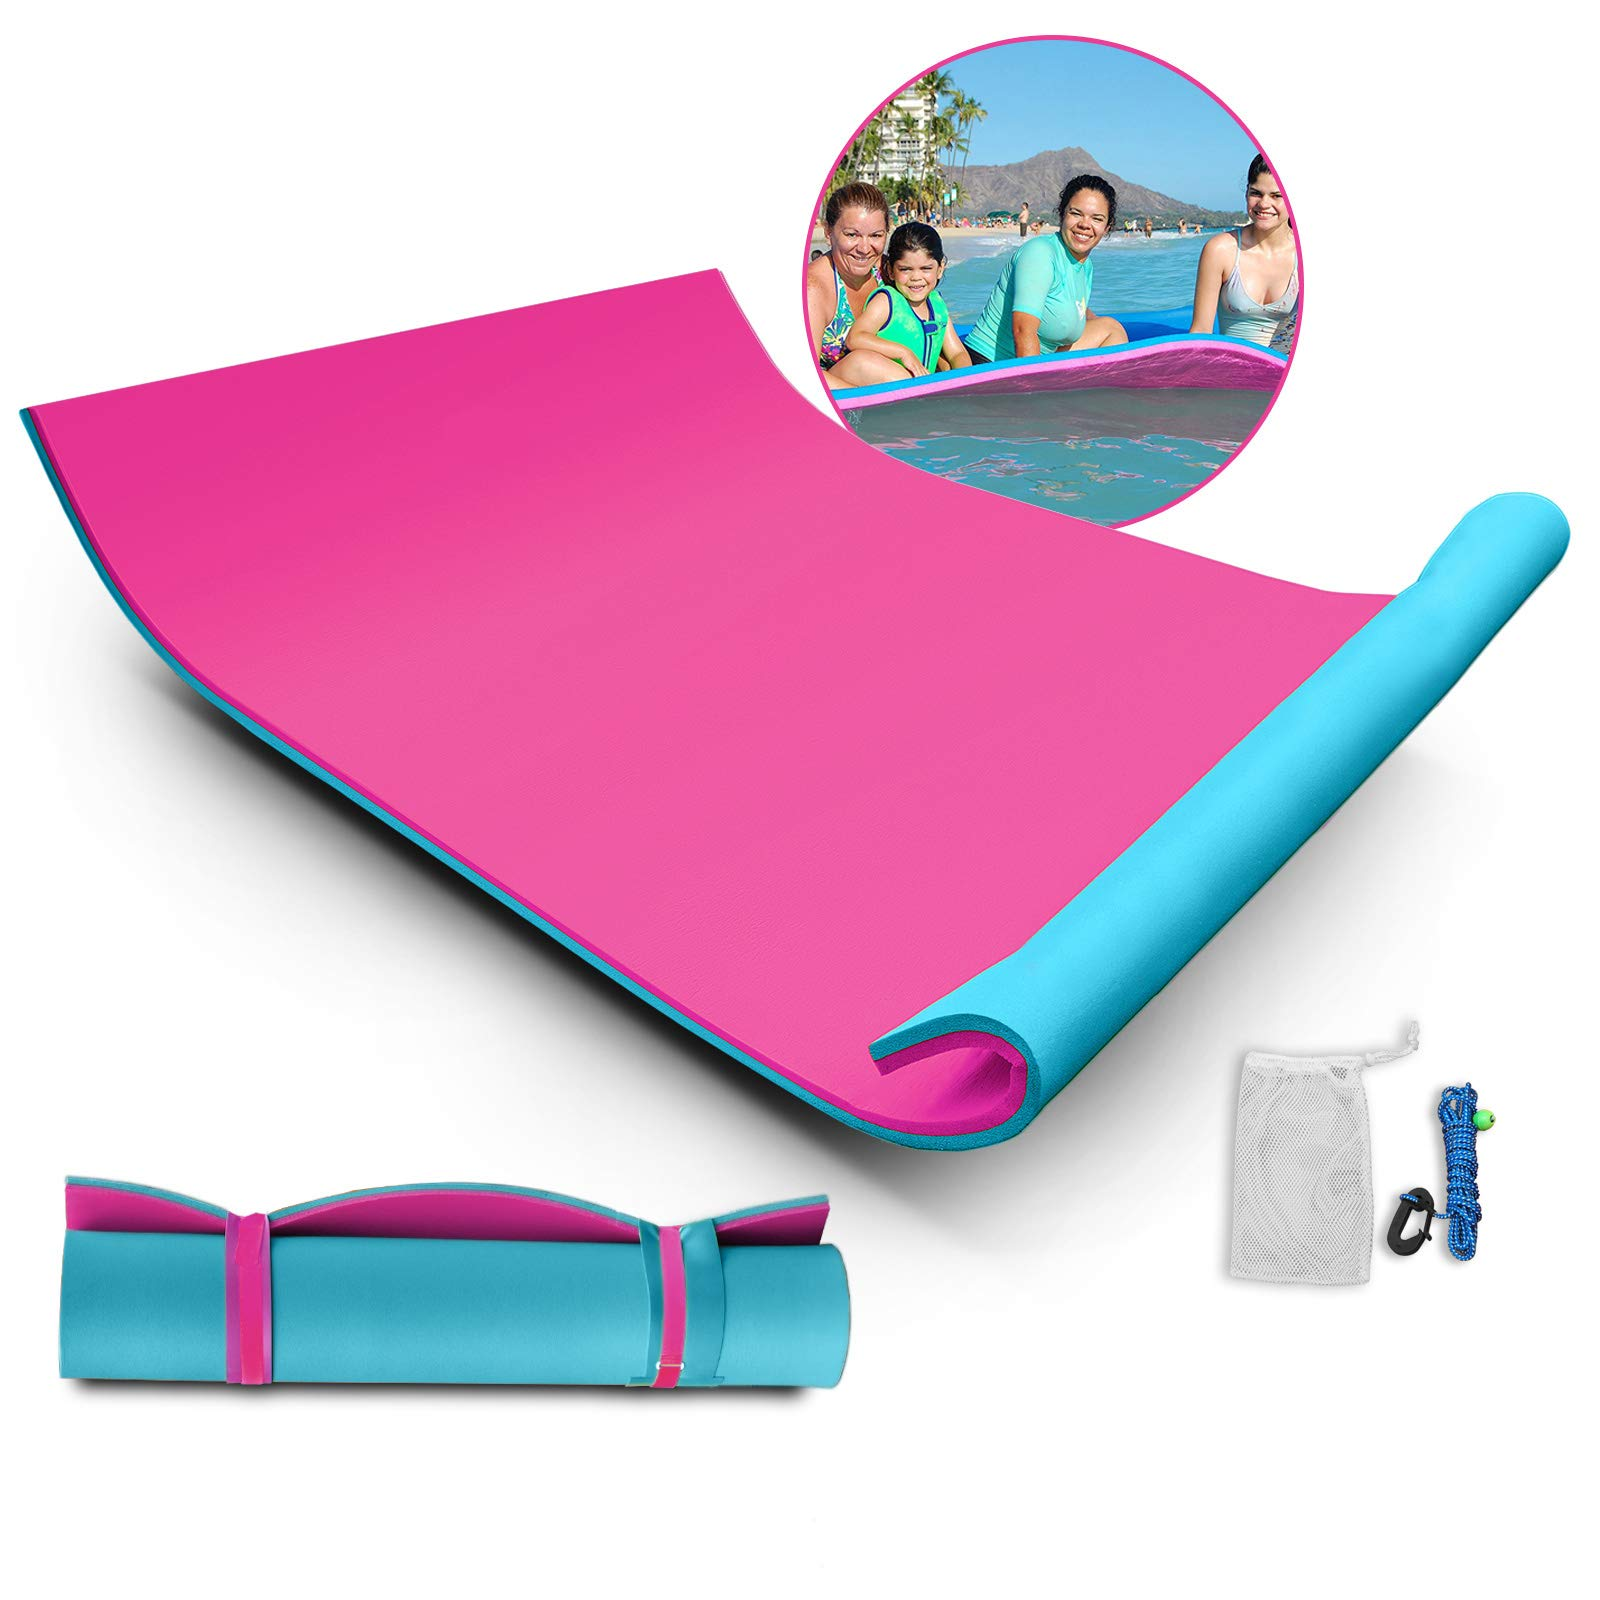 Popsport Floating Water Mat Series Floating Foam Pad Water Recreation and Relaxing in Pool/Beach/Lake Water Floating Mat with DIY Head Pillow for Adults and Kids (Pink&Blue, 18X6FT)